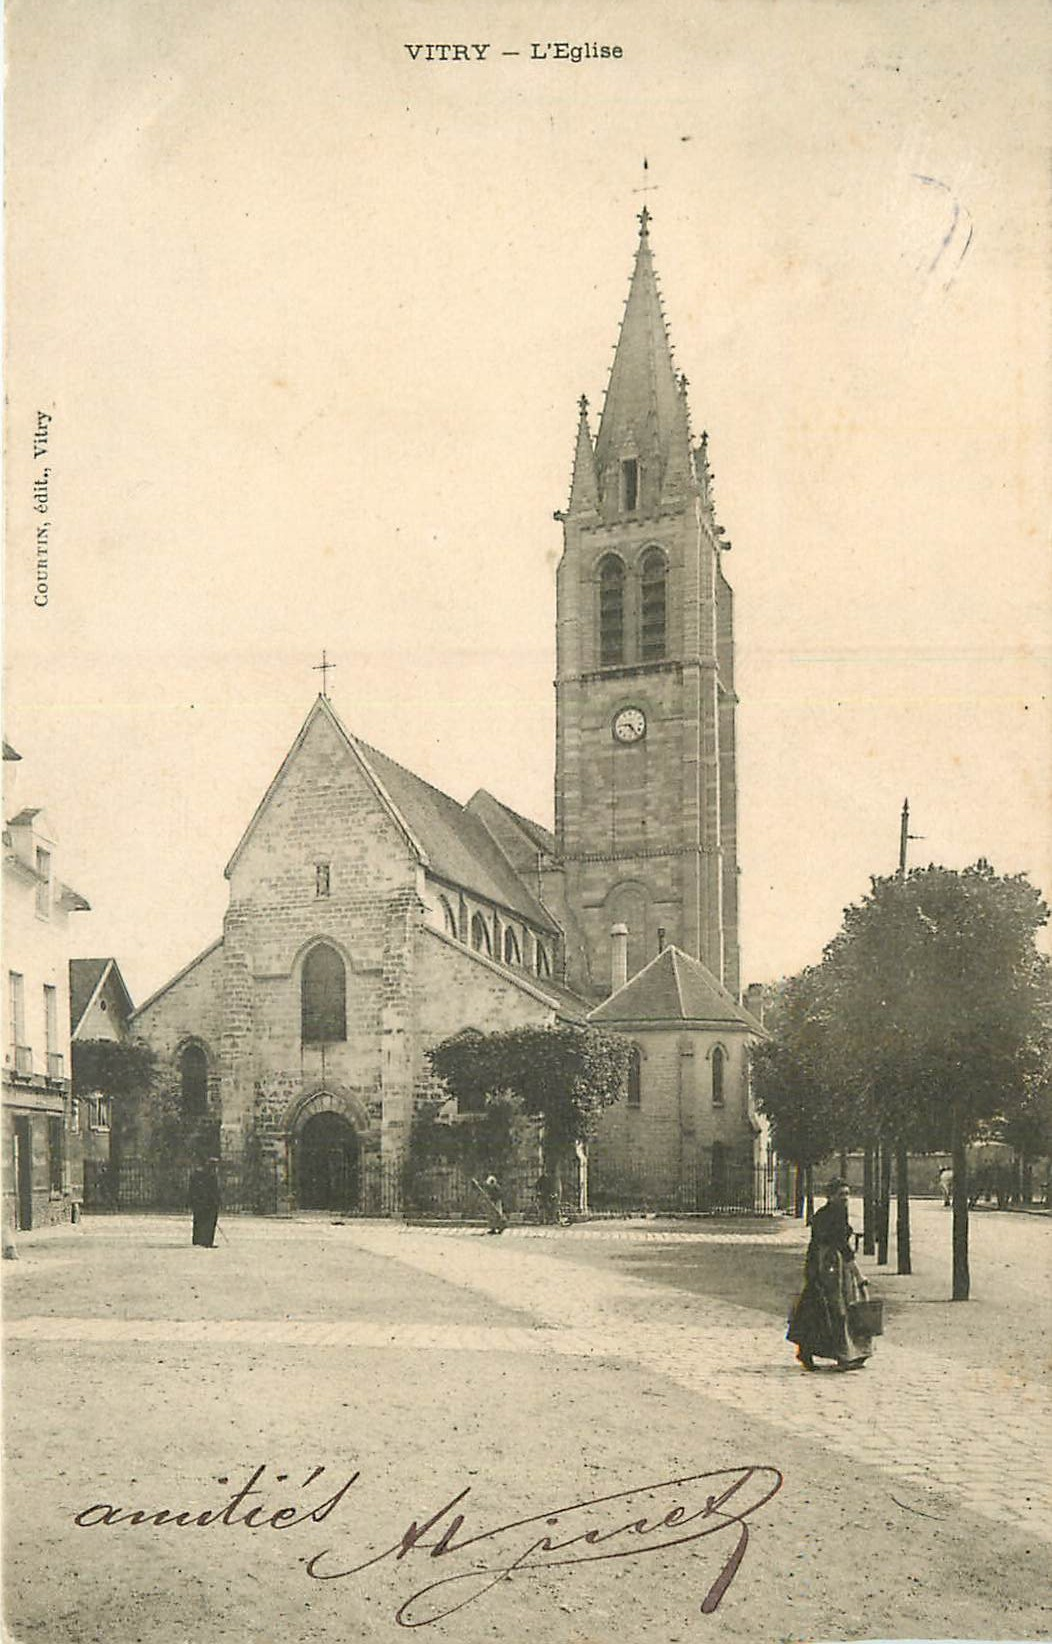 WW 94 VITRY-SUR-SEINE. L'Eglise 1904